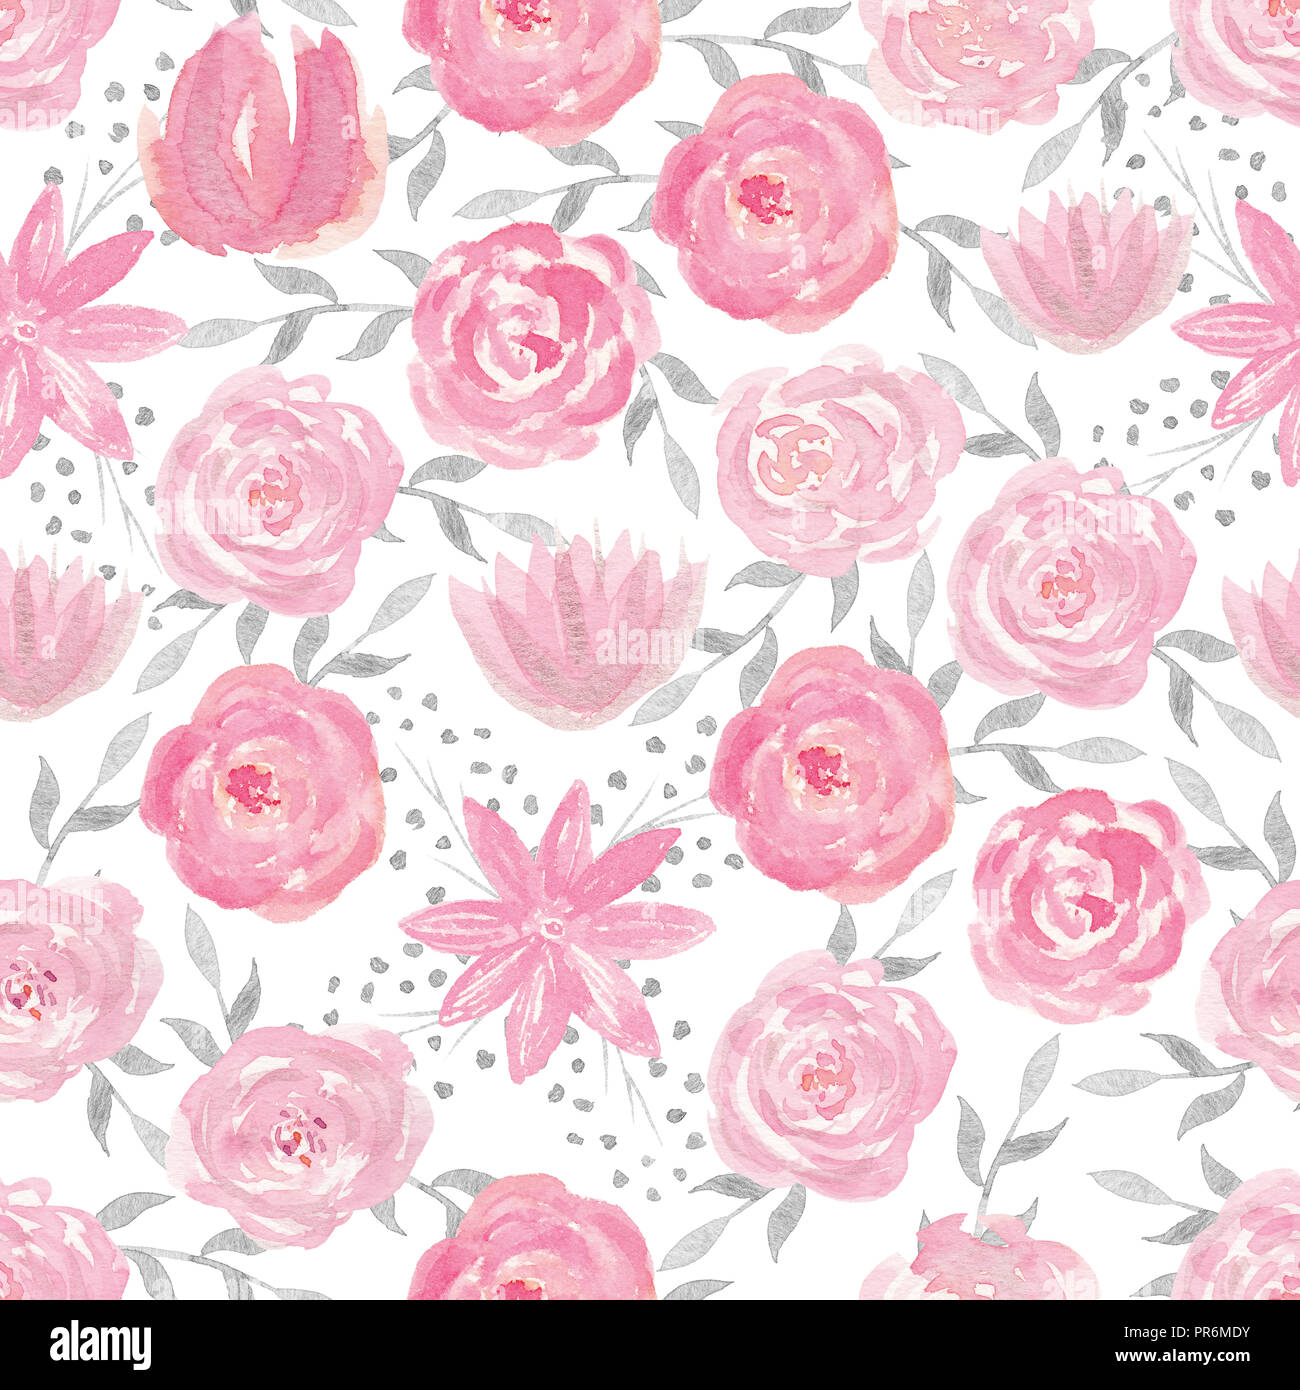 Seamless Pattern With Hand Painted Watercolor Roses In Pastel Pink